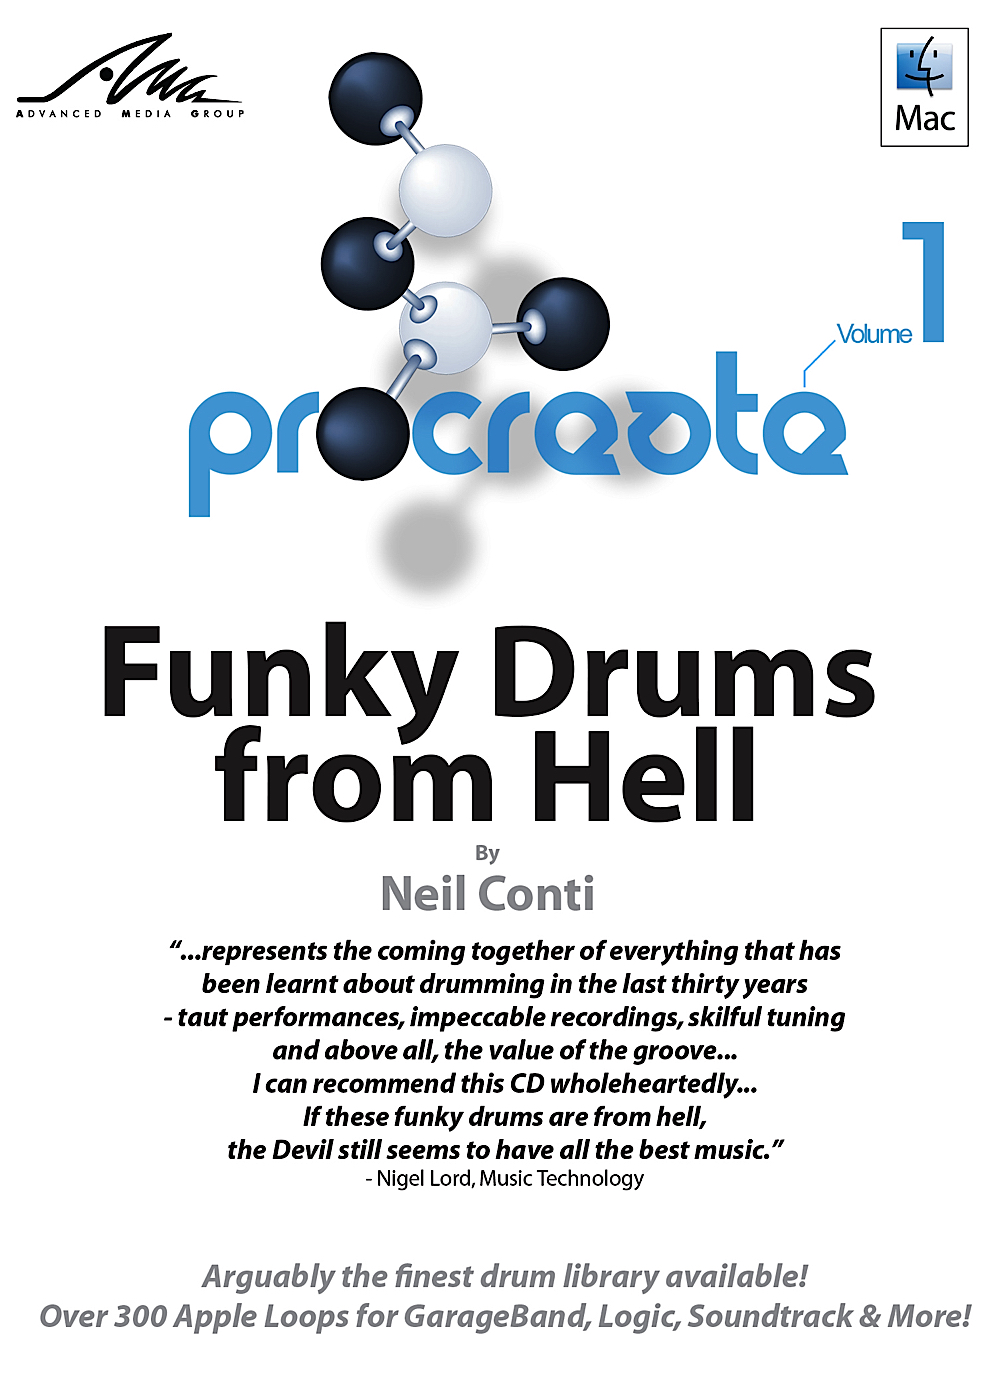 funky-drums-from-hell-neil-conti-superb-funky-drum-apple-loops-download